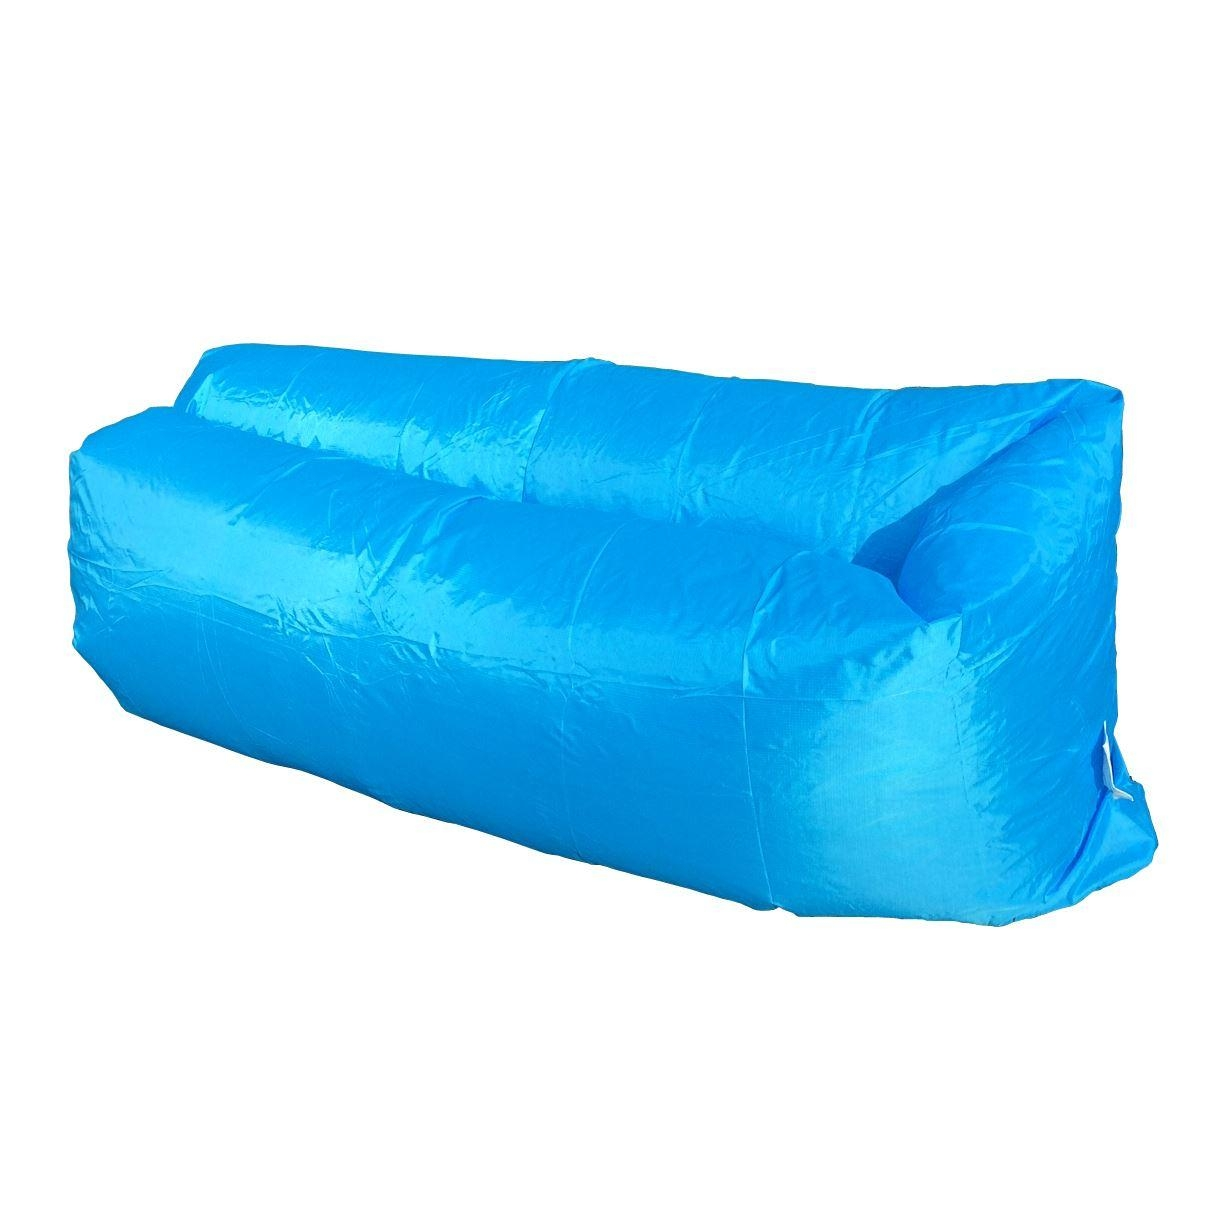 inflatable soccer ball chair design size sofas and chairs beach7 airlounge xl is a party